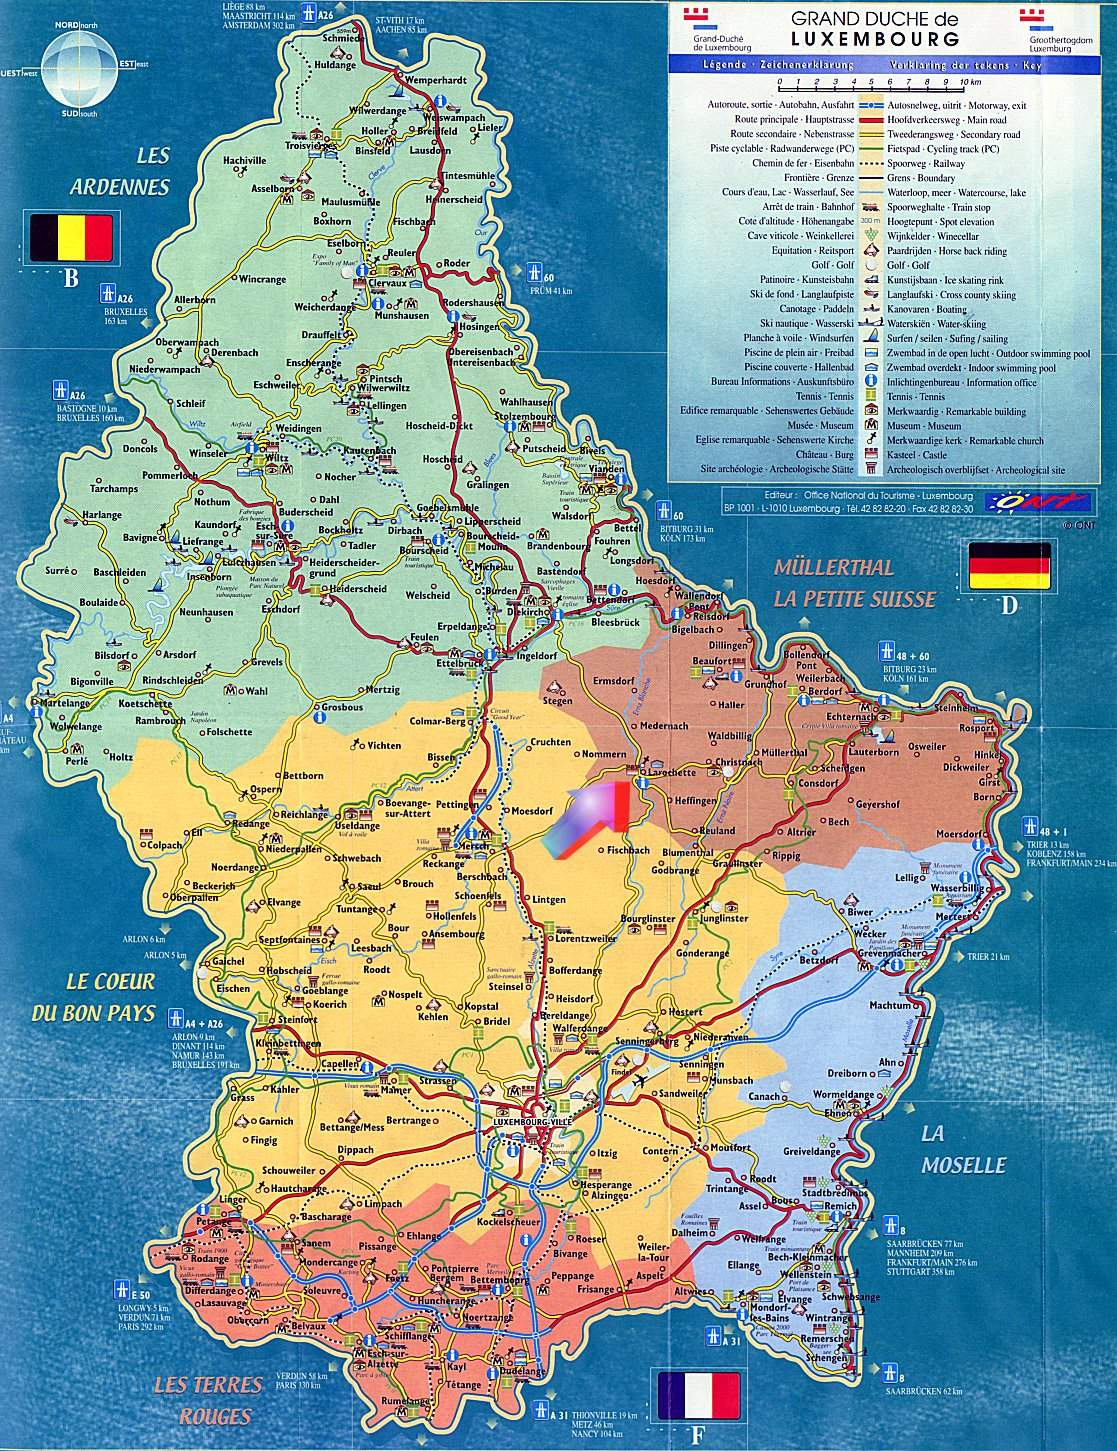 Large Luxembourg Maps for Free Download and Print | High-Resolution ...